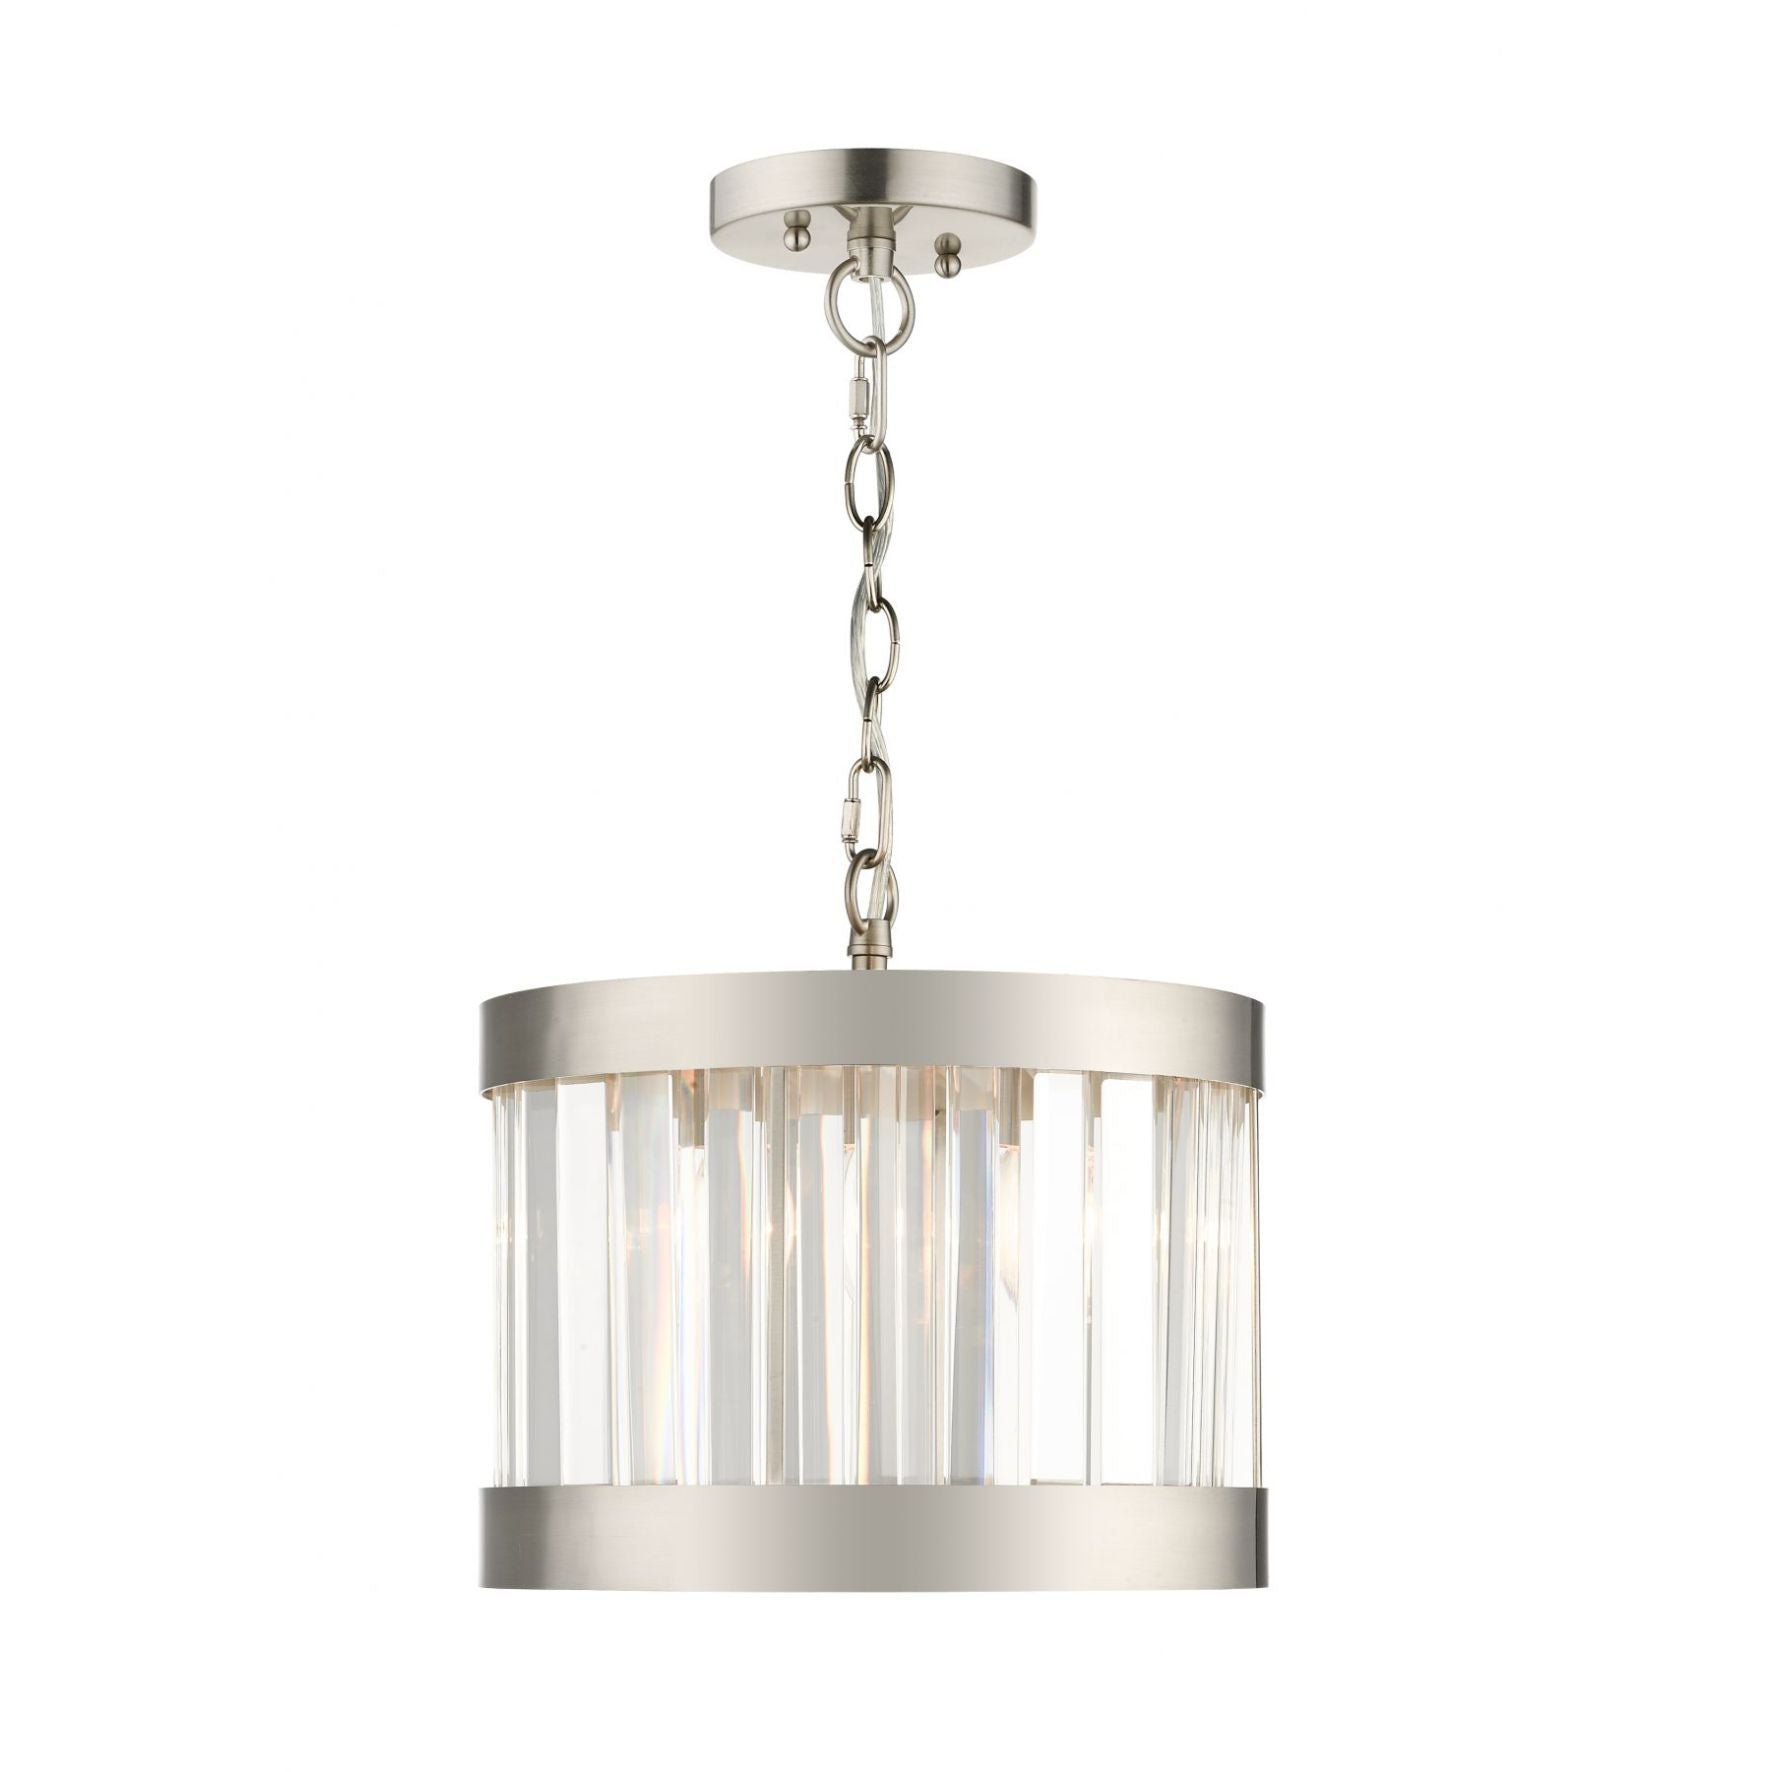 Magnalux Pandora 1 Light Crystal Pendant Satin Chrome